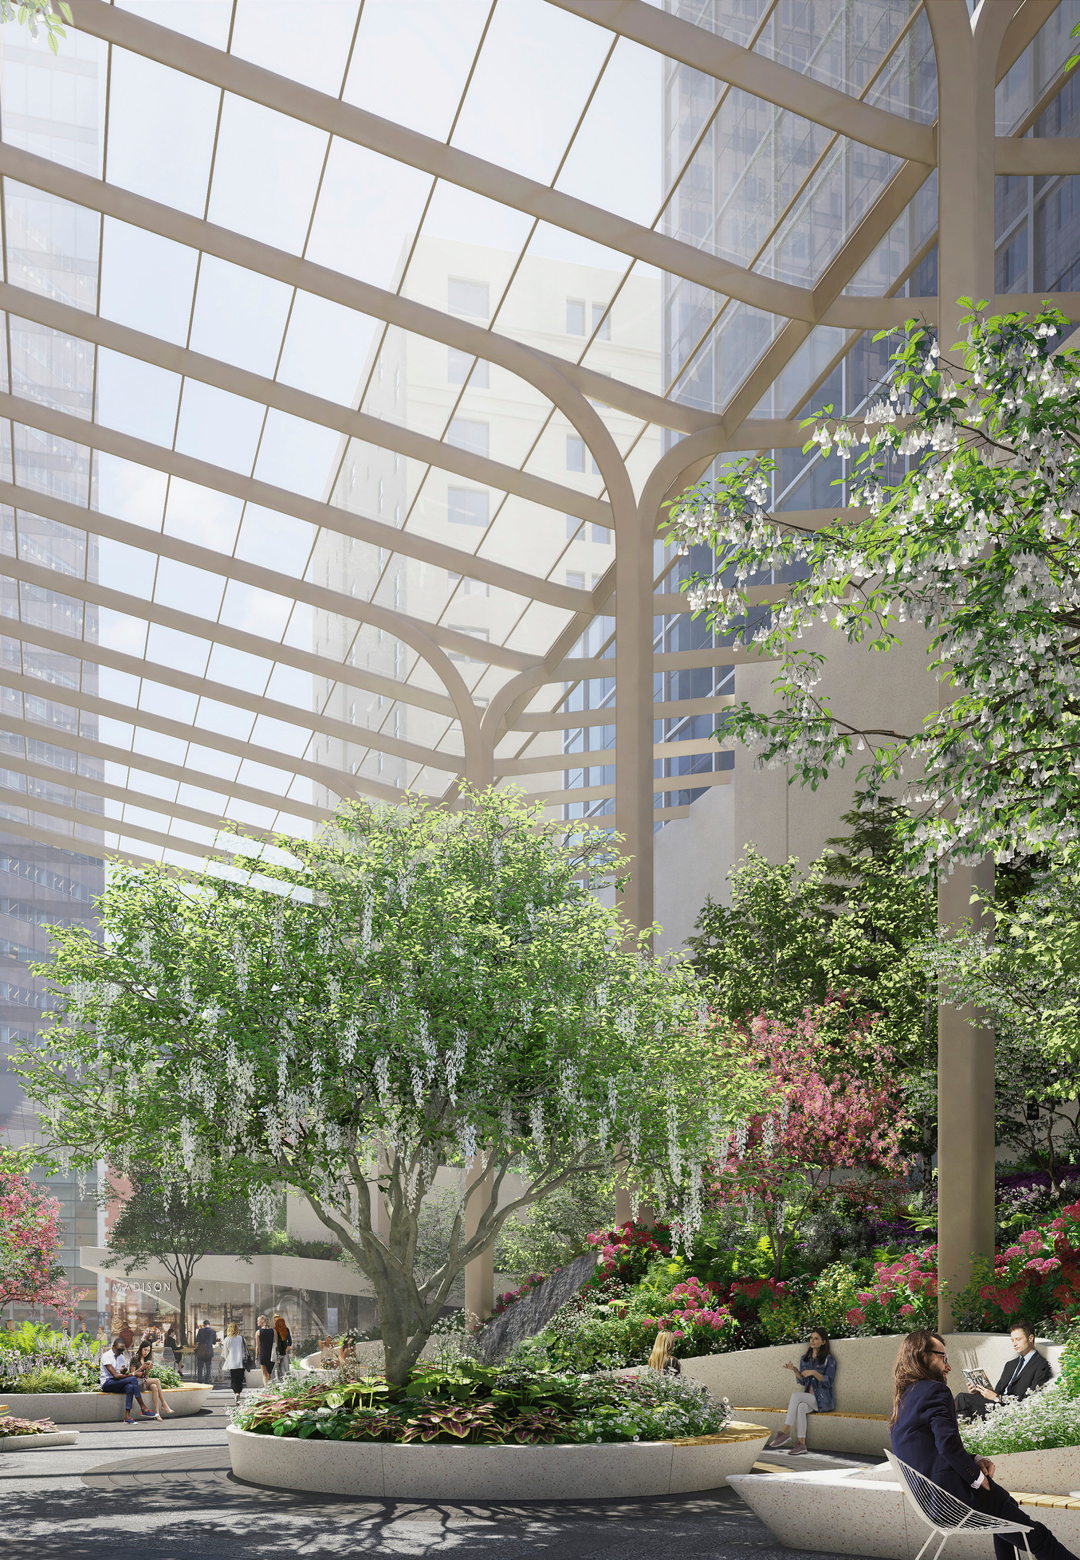 The future garden at 550 Madison in New York, envisioned by Snøhetta | 550 Madison Garden | The Olayan Group | Snøhetta | STIRworld